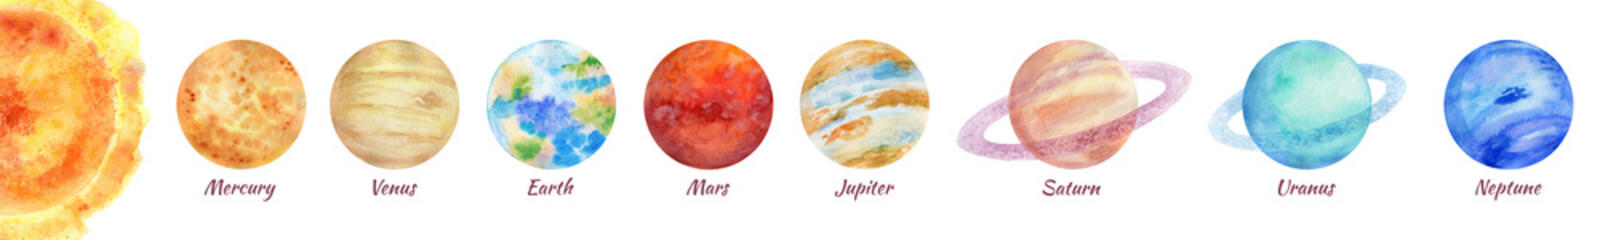 A bright colorful watercolor illustration of a solar system on a white background.  A set of 8 planets: Mercury, Venus, Earth, Mars, Jupiter, Saturn, Uranus, Neptune. Isolated space objects.